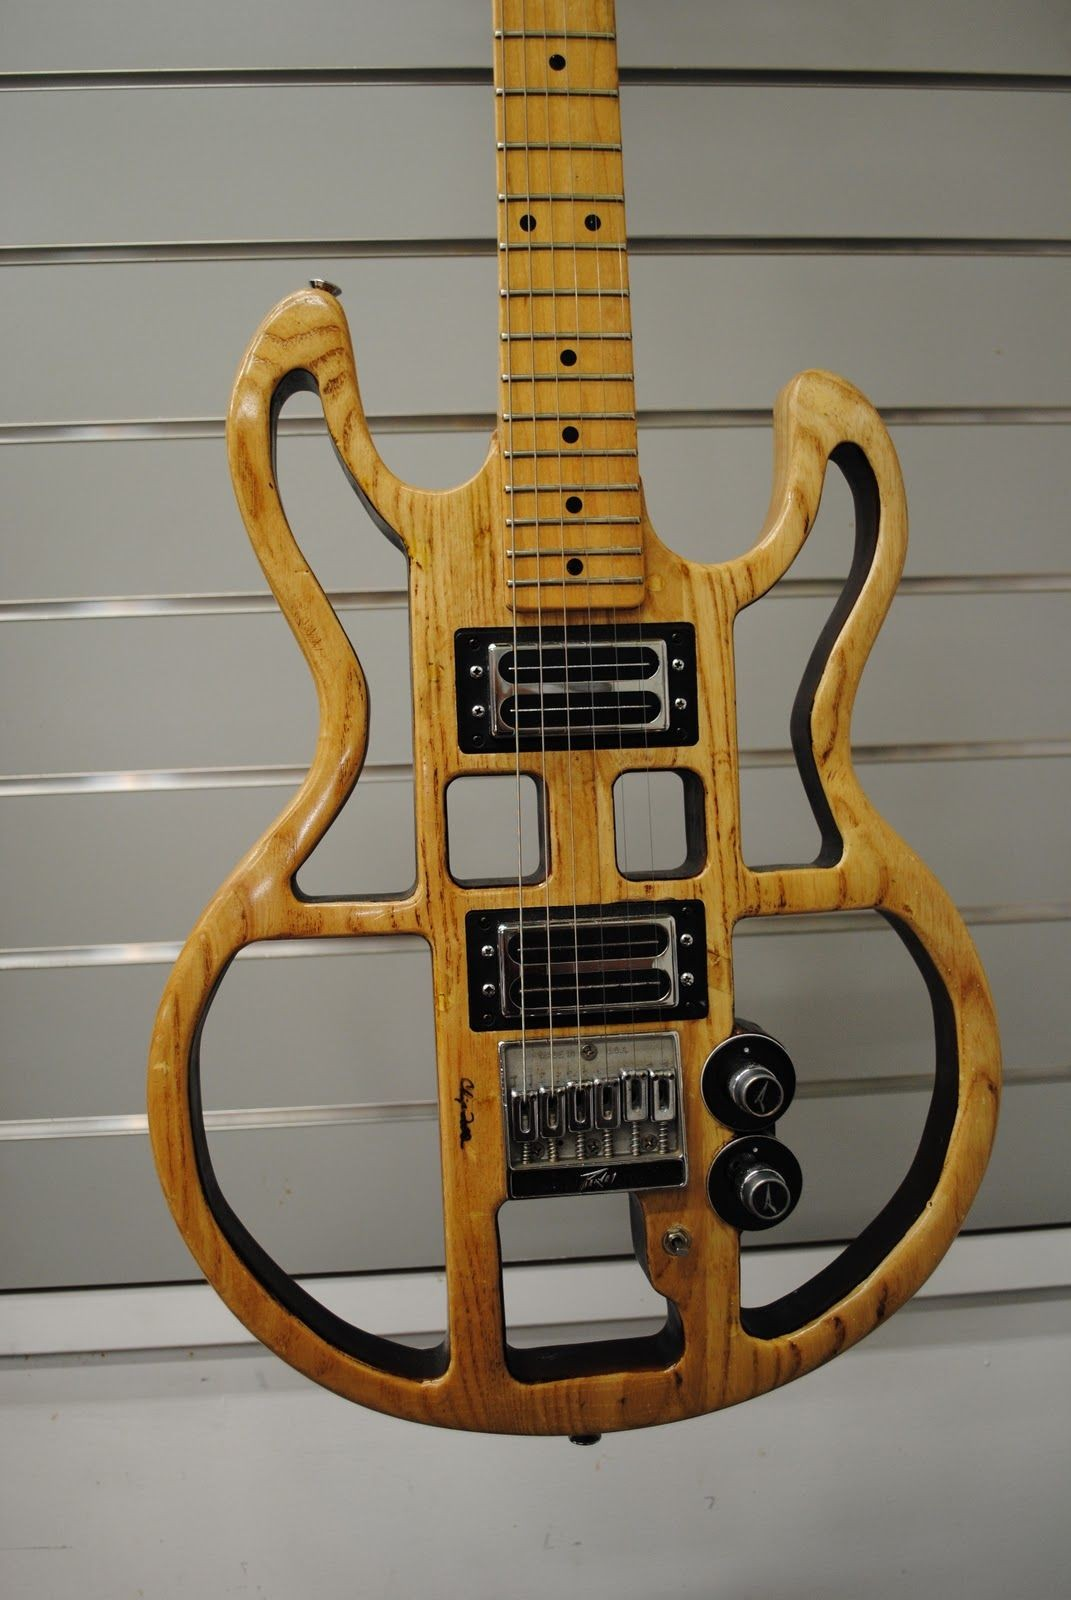 Peavey T 60 Interesting look but I think whoever modded this cut too much